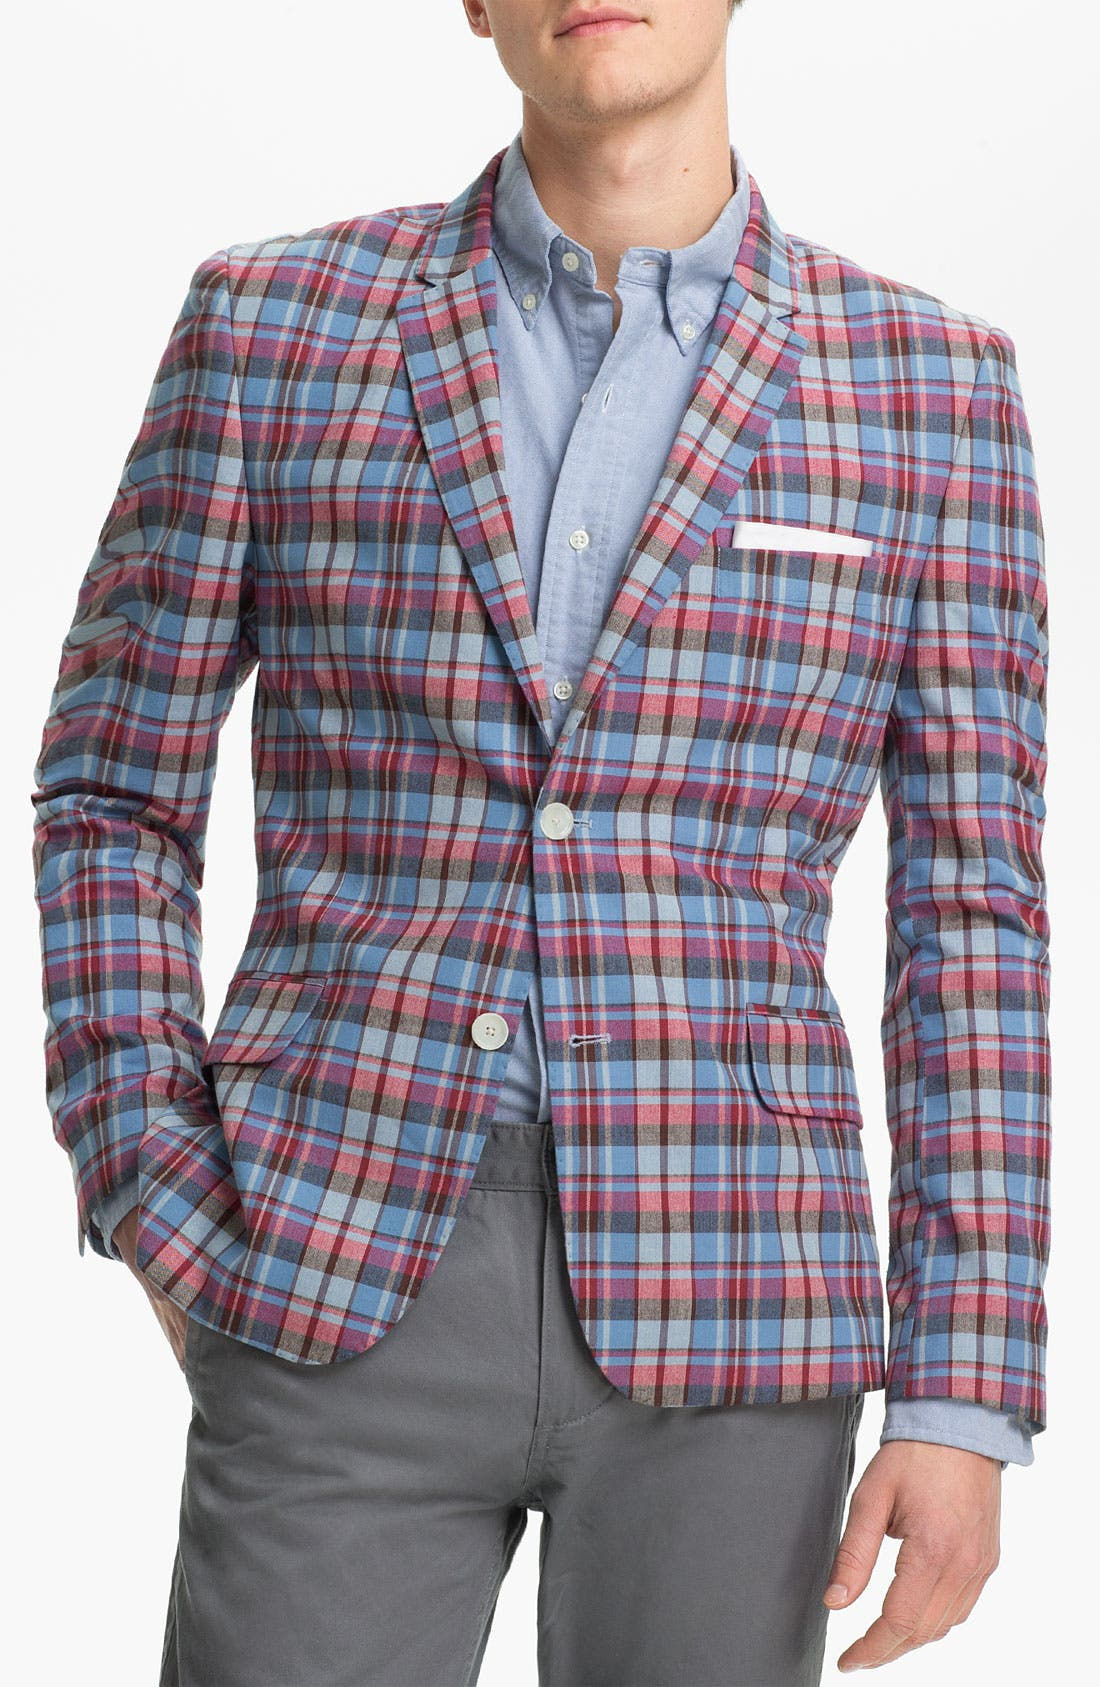 Alternate Image 1 Selected - John W. Nordstrom® Madras Cotton Sportcoat